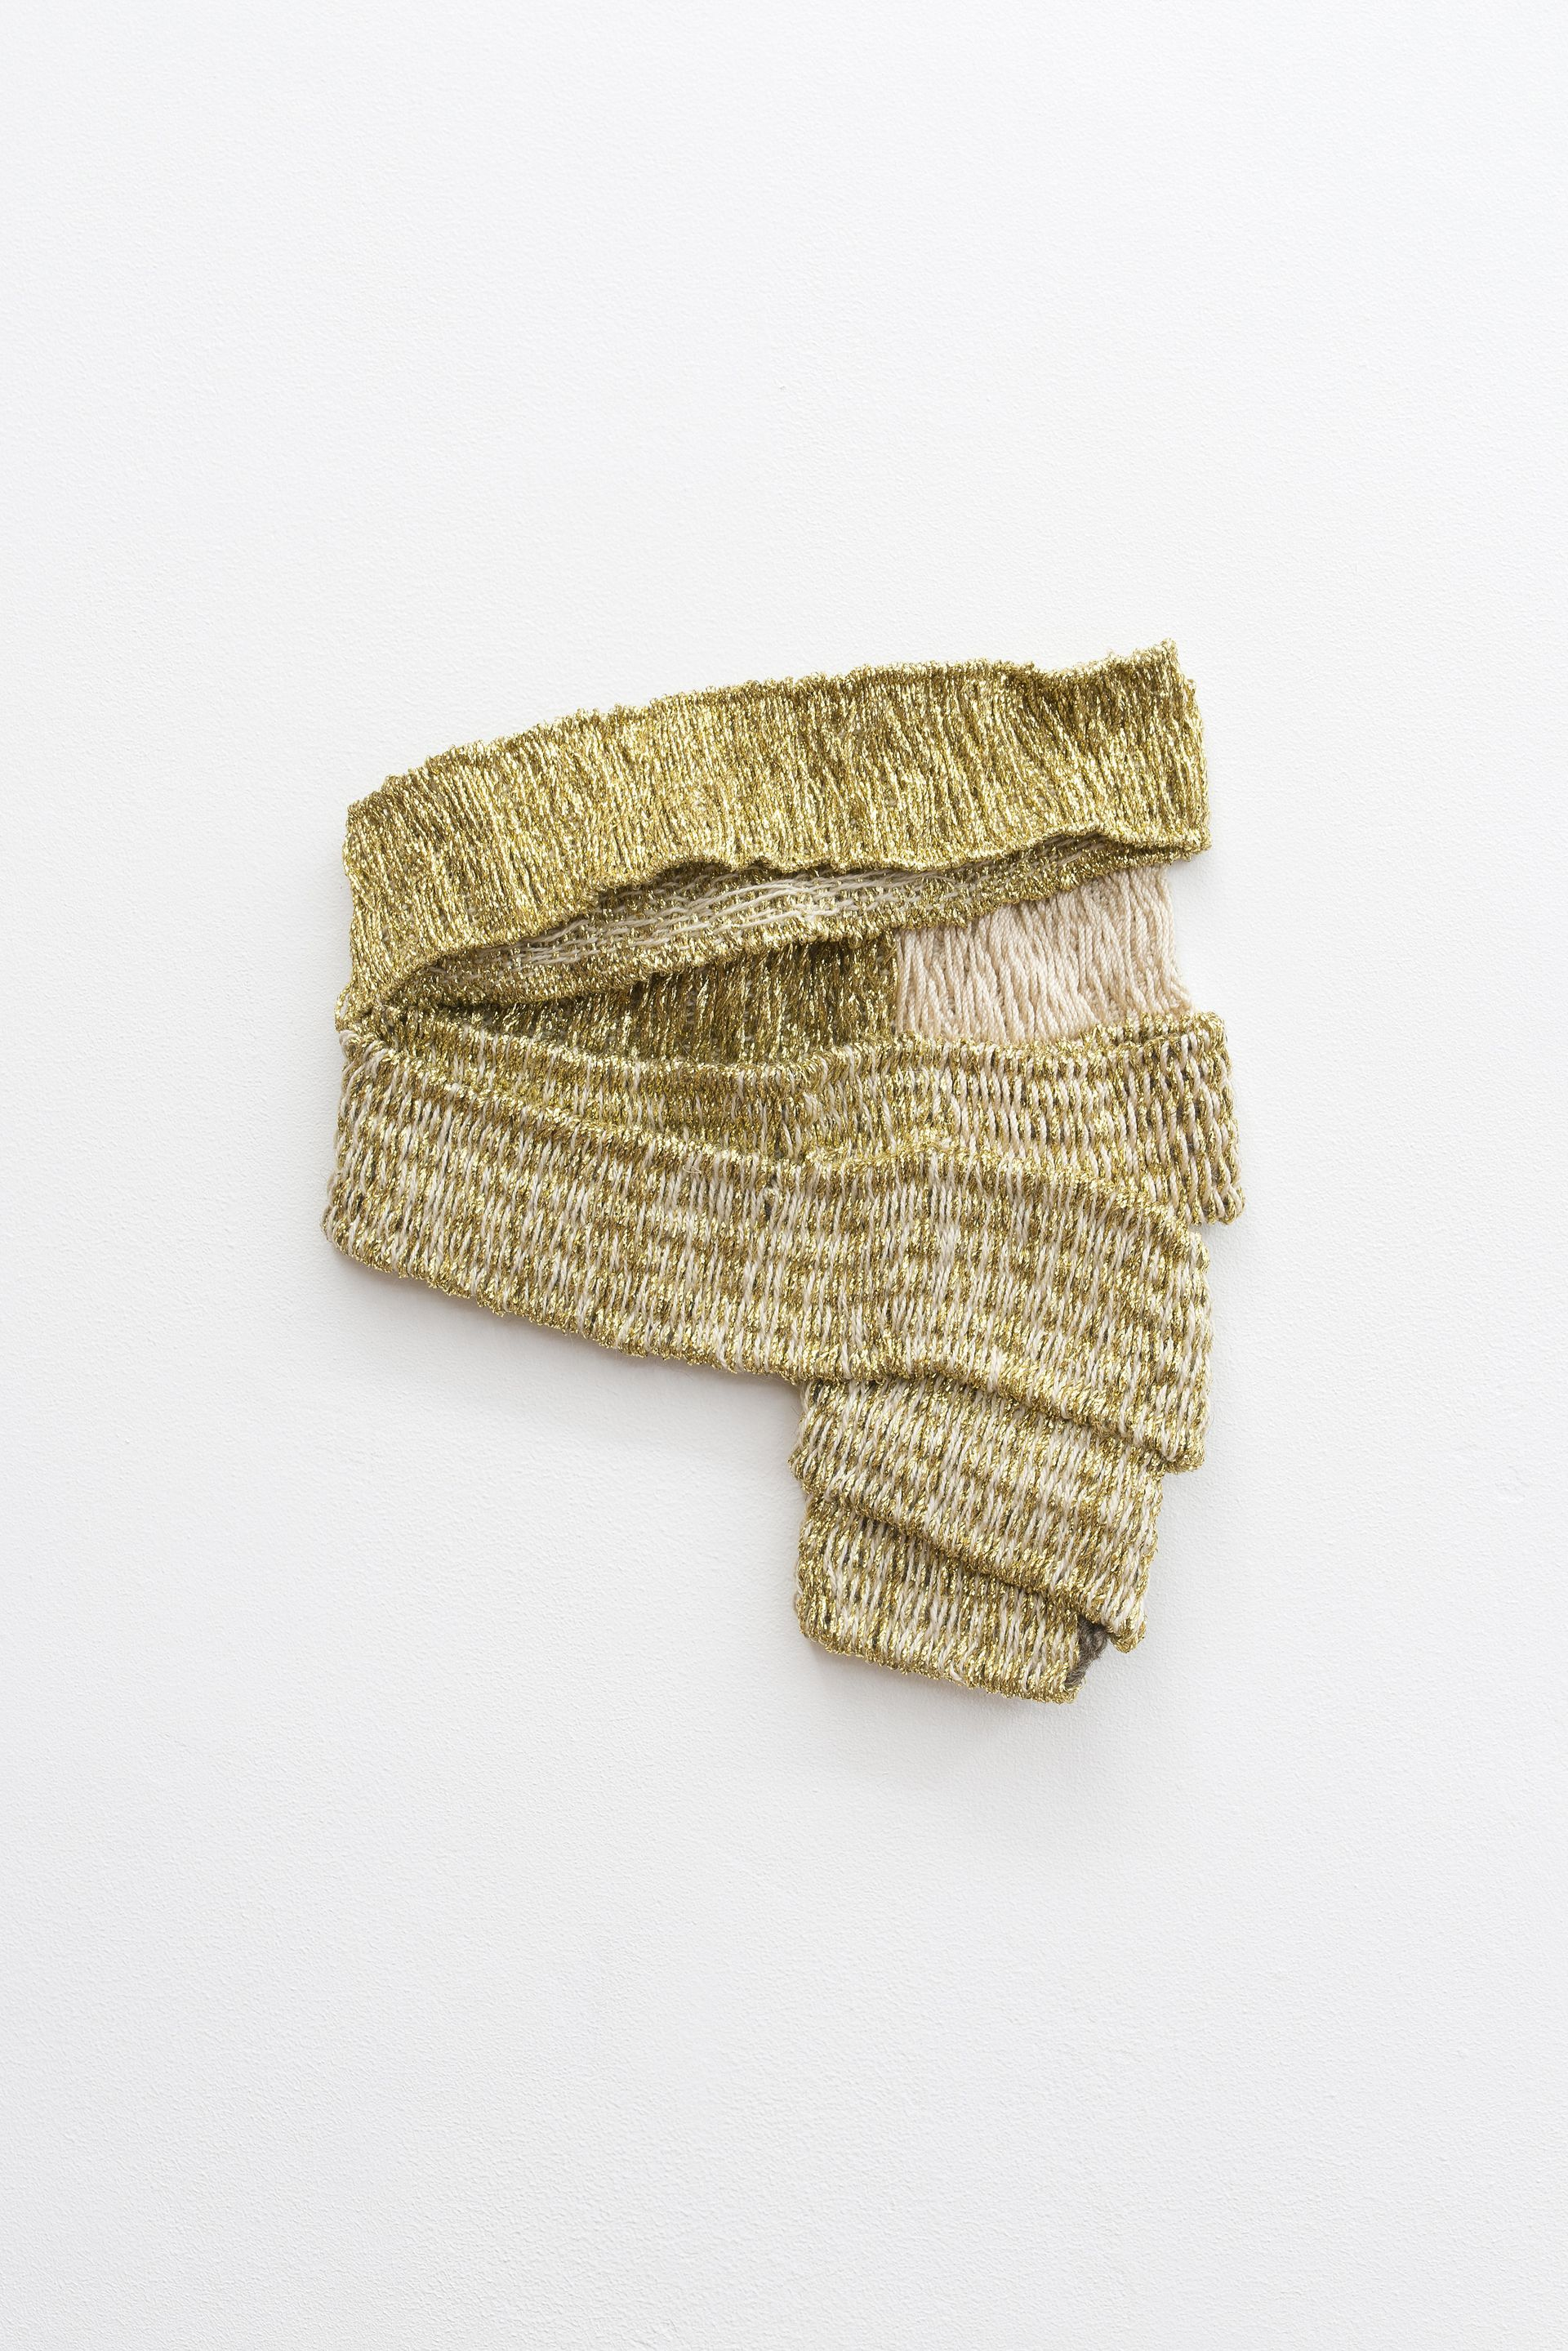 Hana Miletić, Materials, 2020, Hand-woven textile (brown-gray raw wool, golden metal yarn, natural cotton and beige mercerized cotton), 20 x 22,5 x 1,5 cm, Courtesy the artist Photo: © Isabelle Arthuis